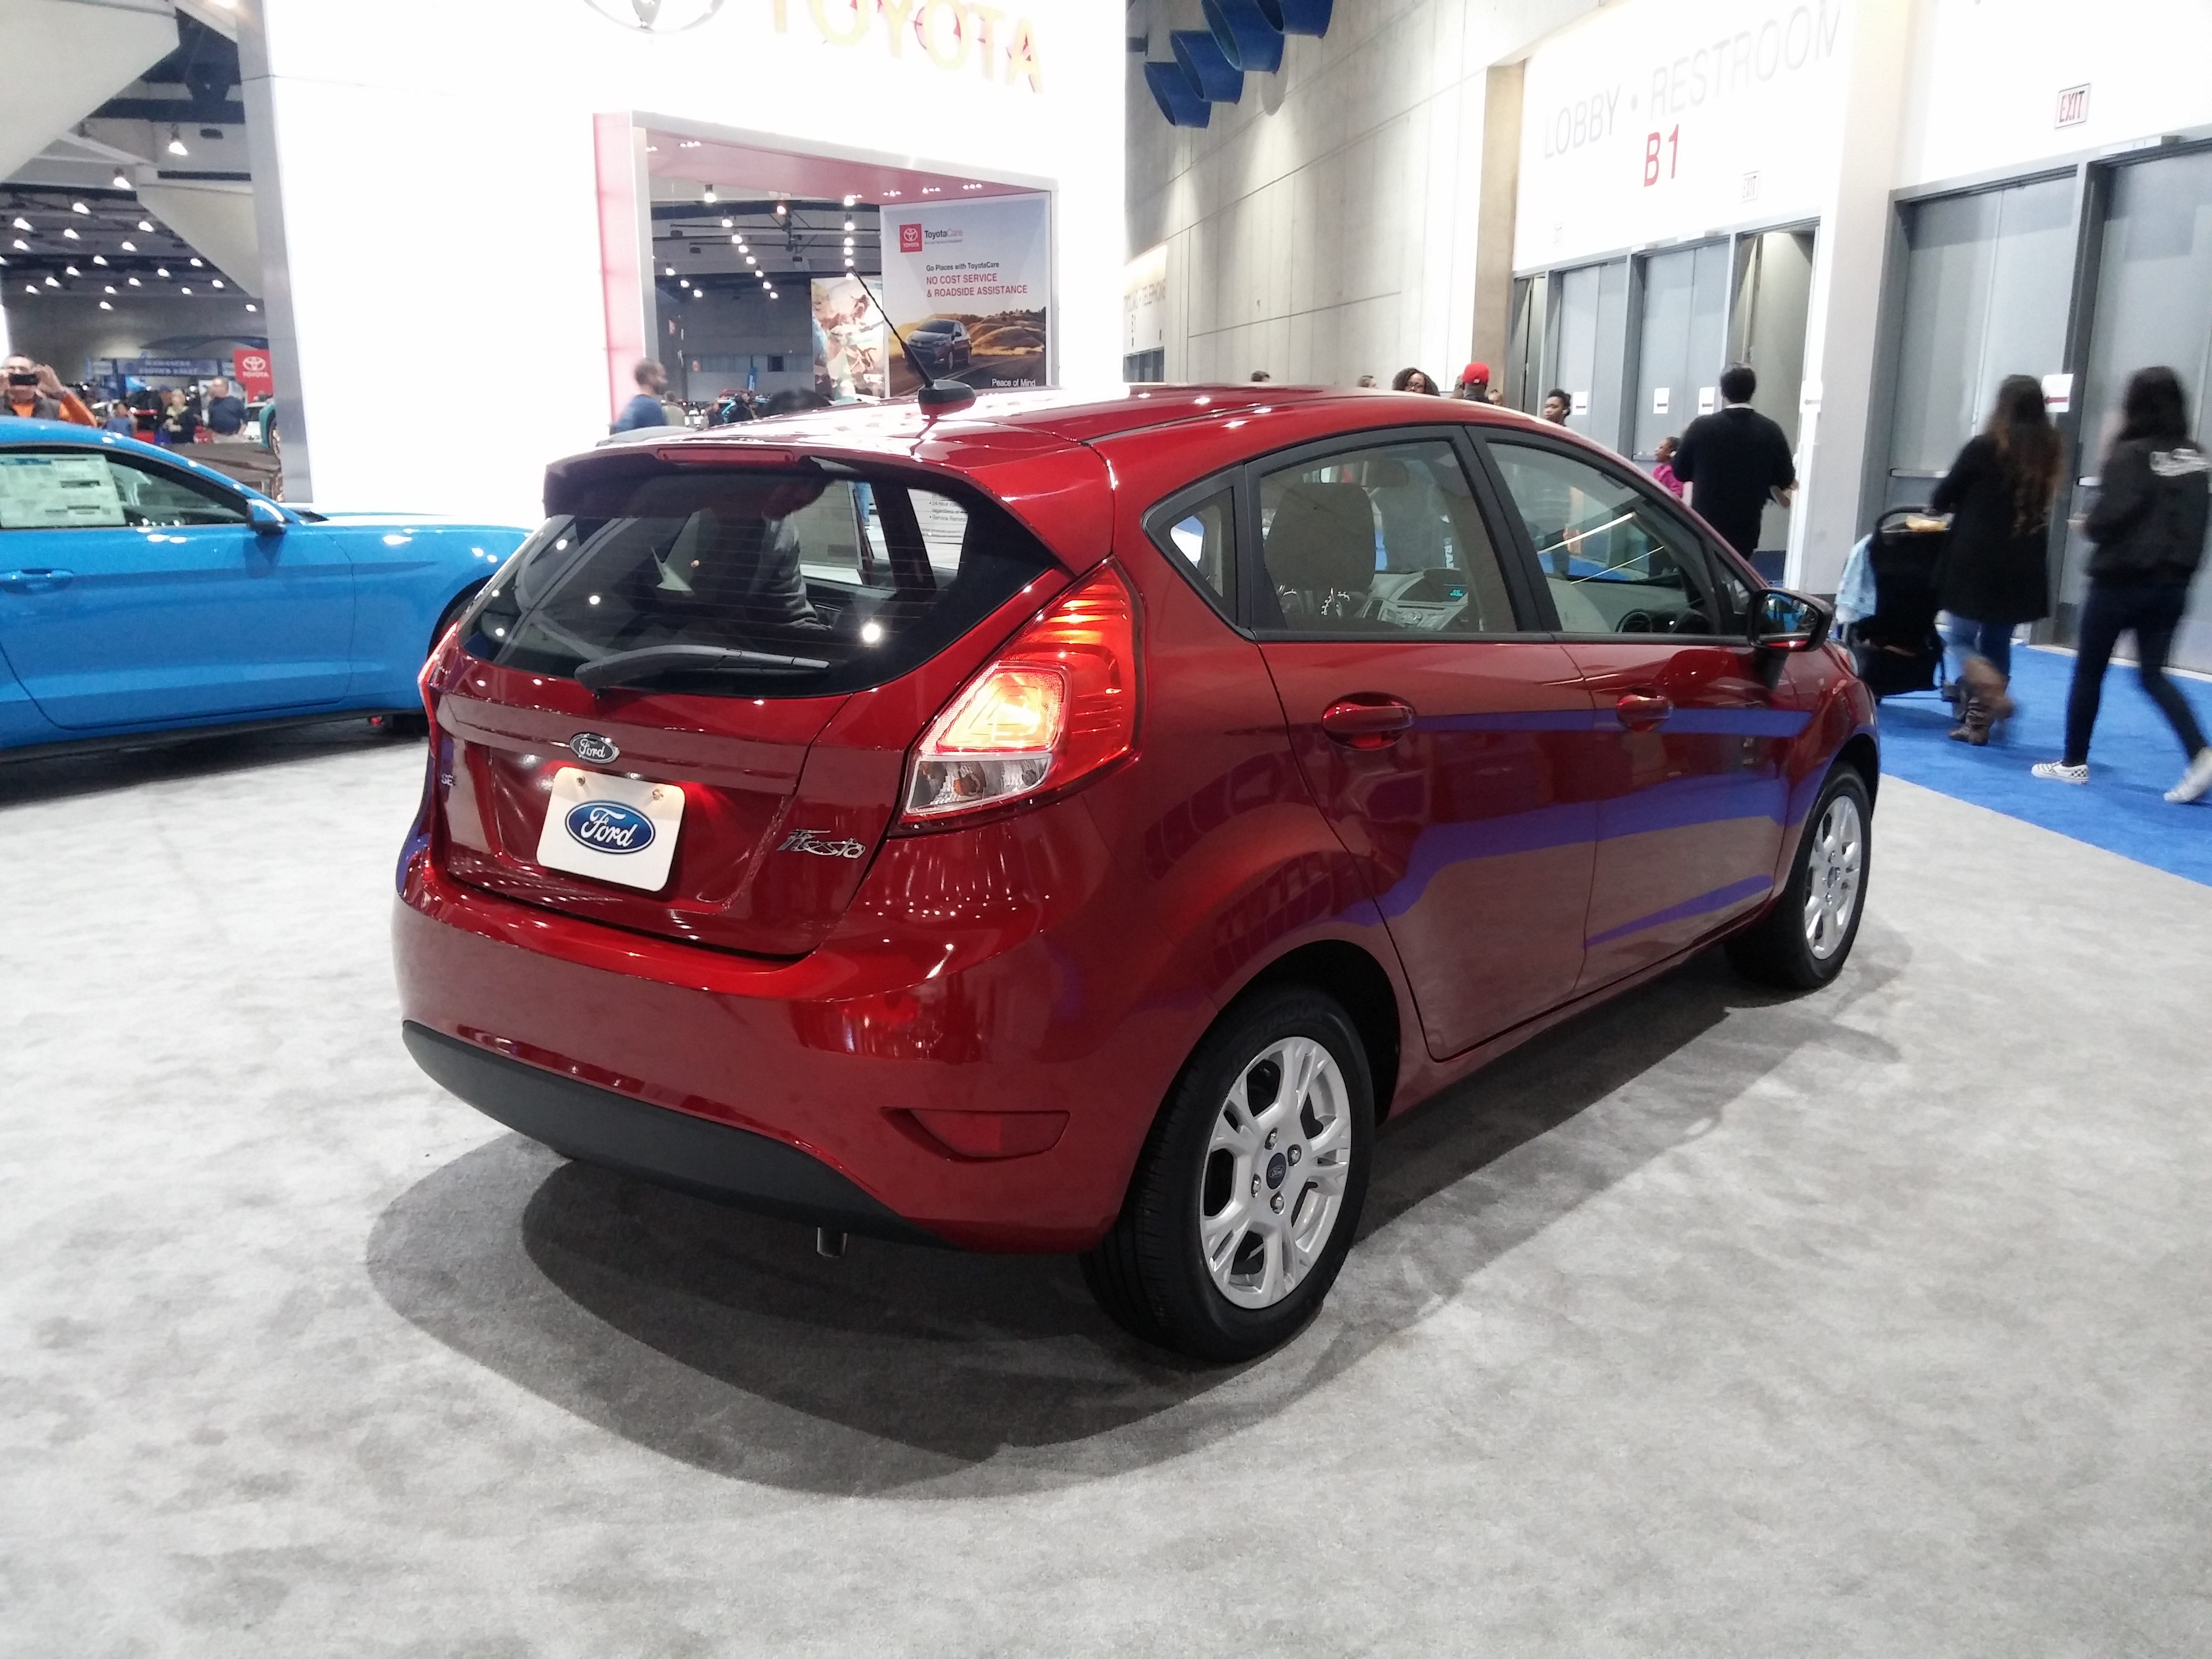 Toyotacare Roadside Assistance Number >> File Ford Fiesta 2017 Back Jpg Wikimedia Commons